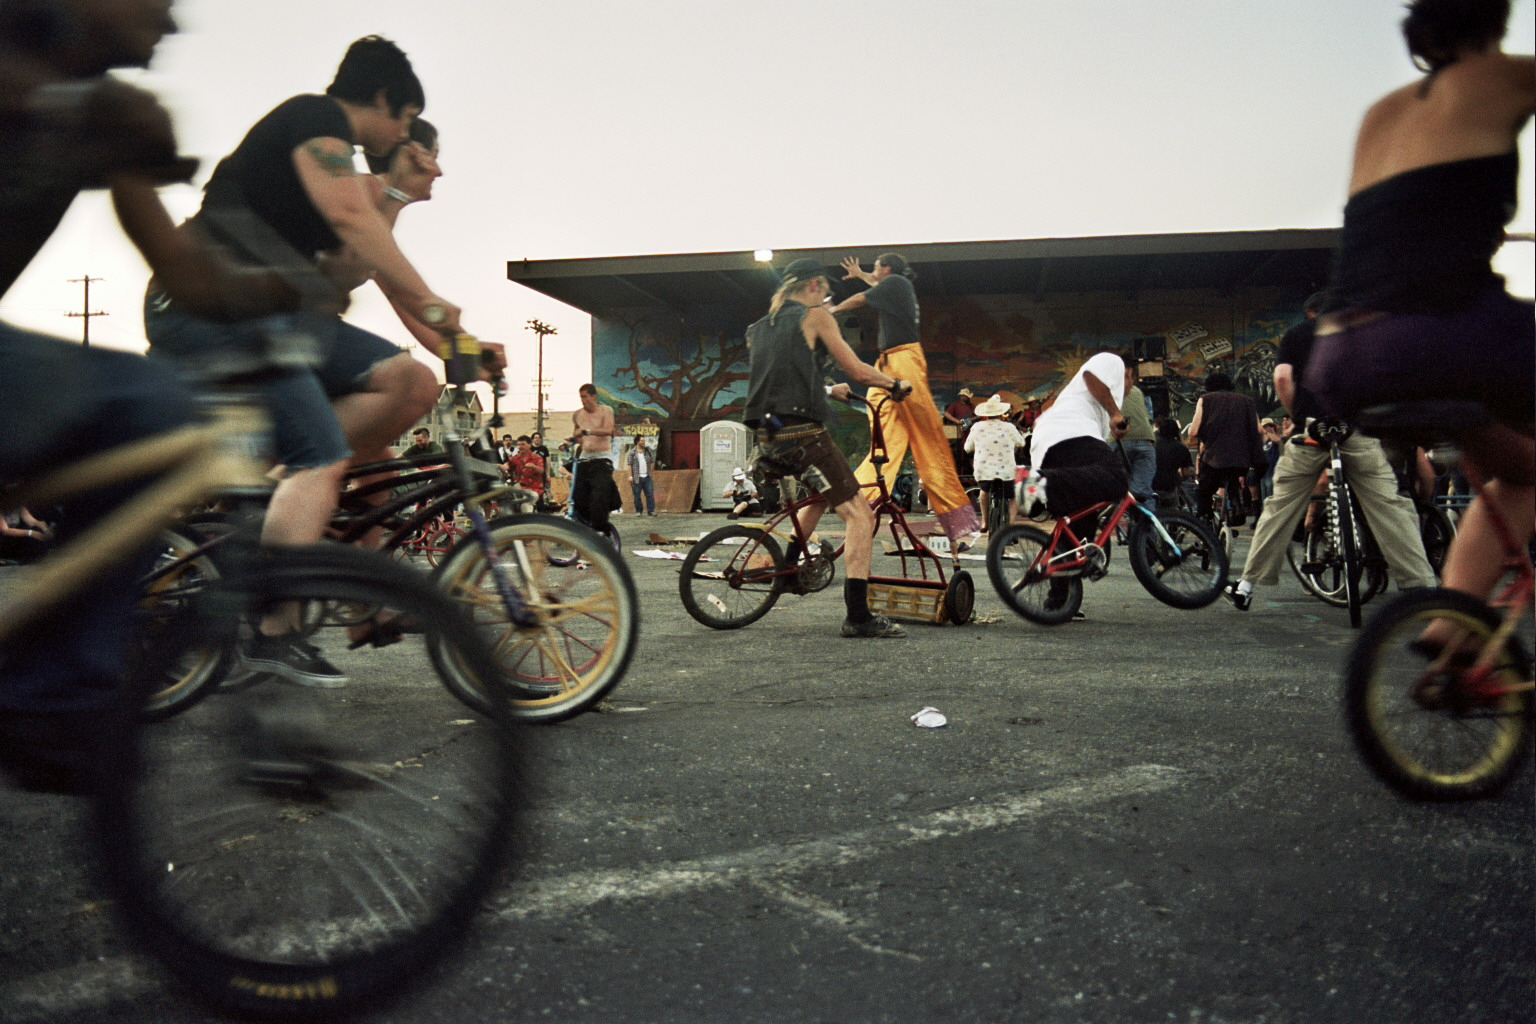 Bike Mosh Pit By Angela Scrivani